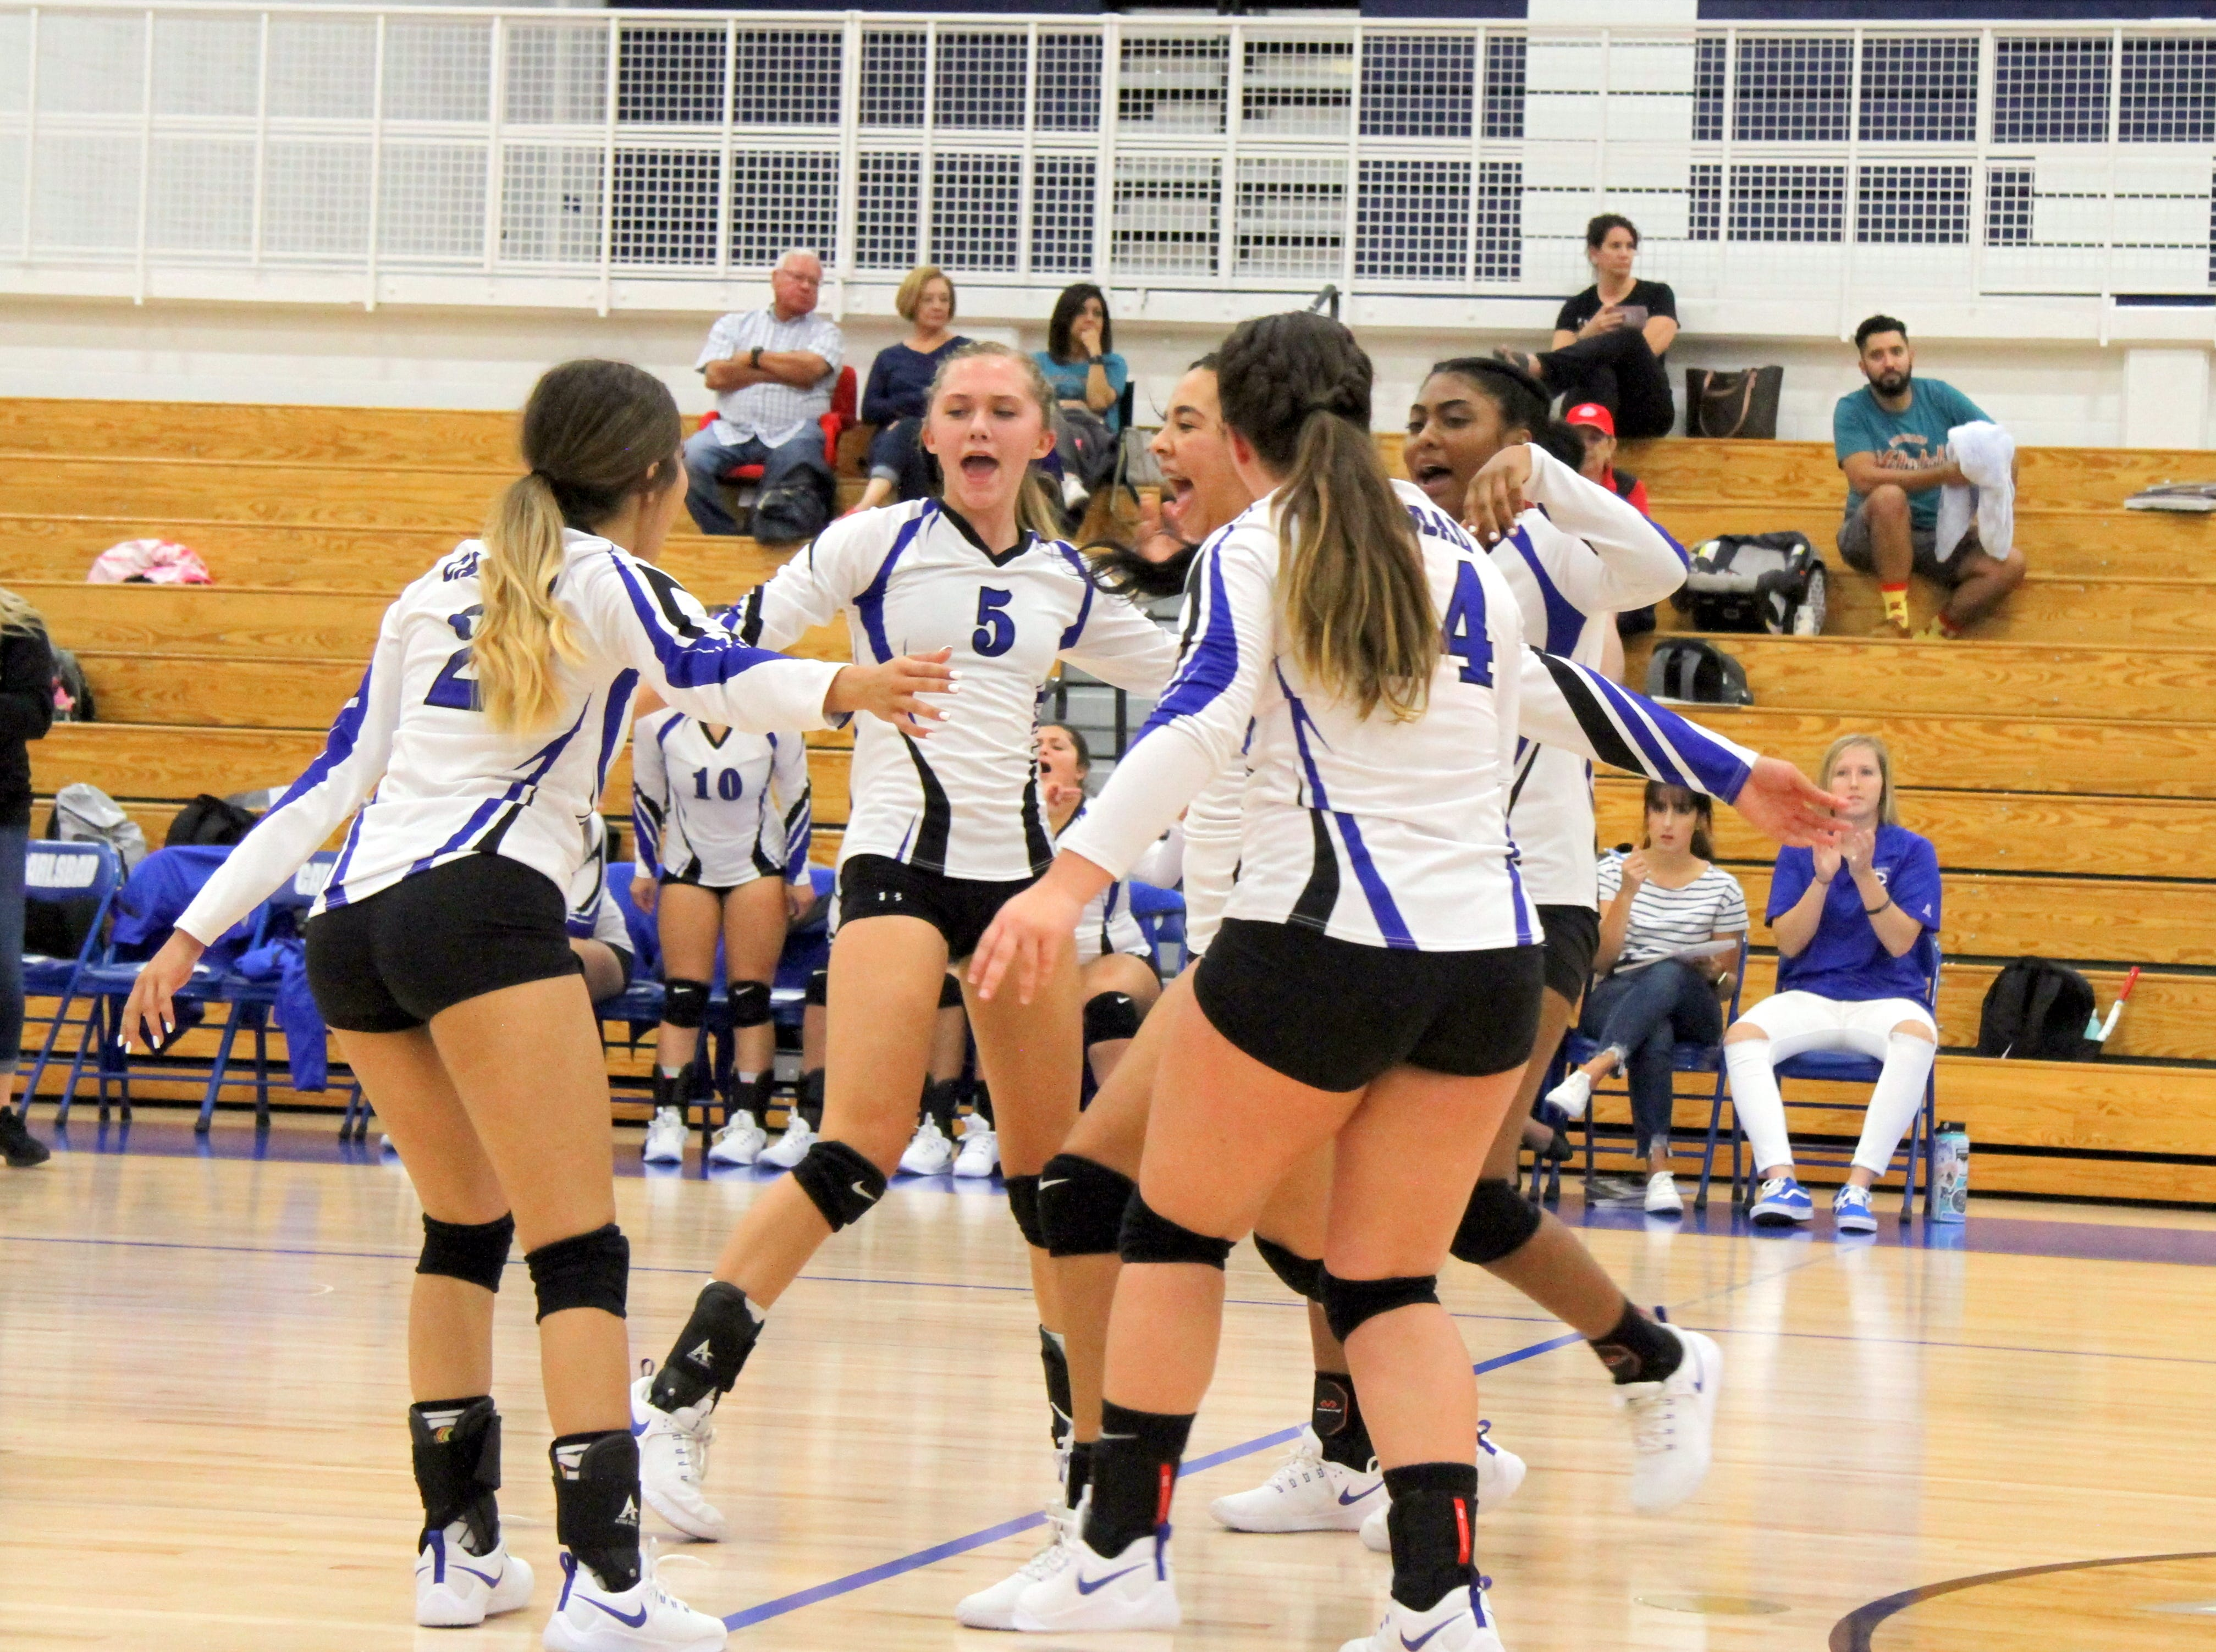 The Cavegirls celebrate a point in the fourth set of Thursday's match against Pebble Hills.